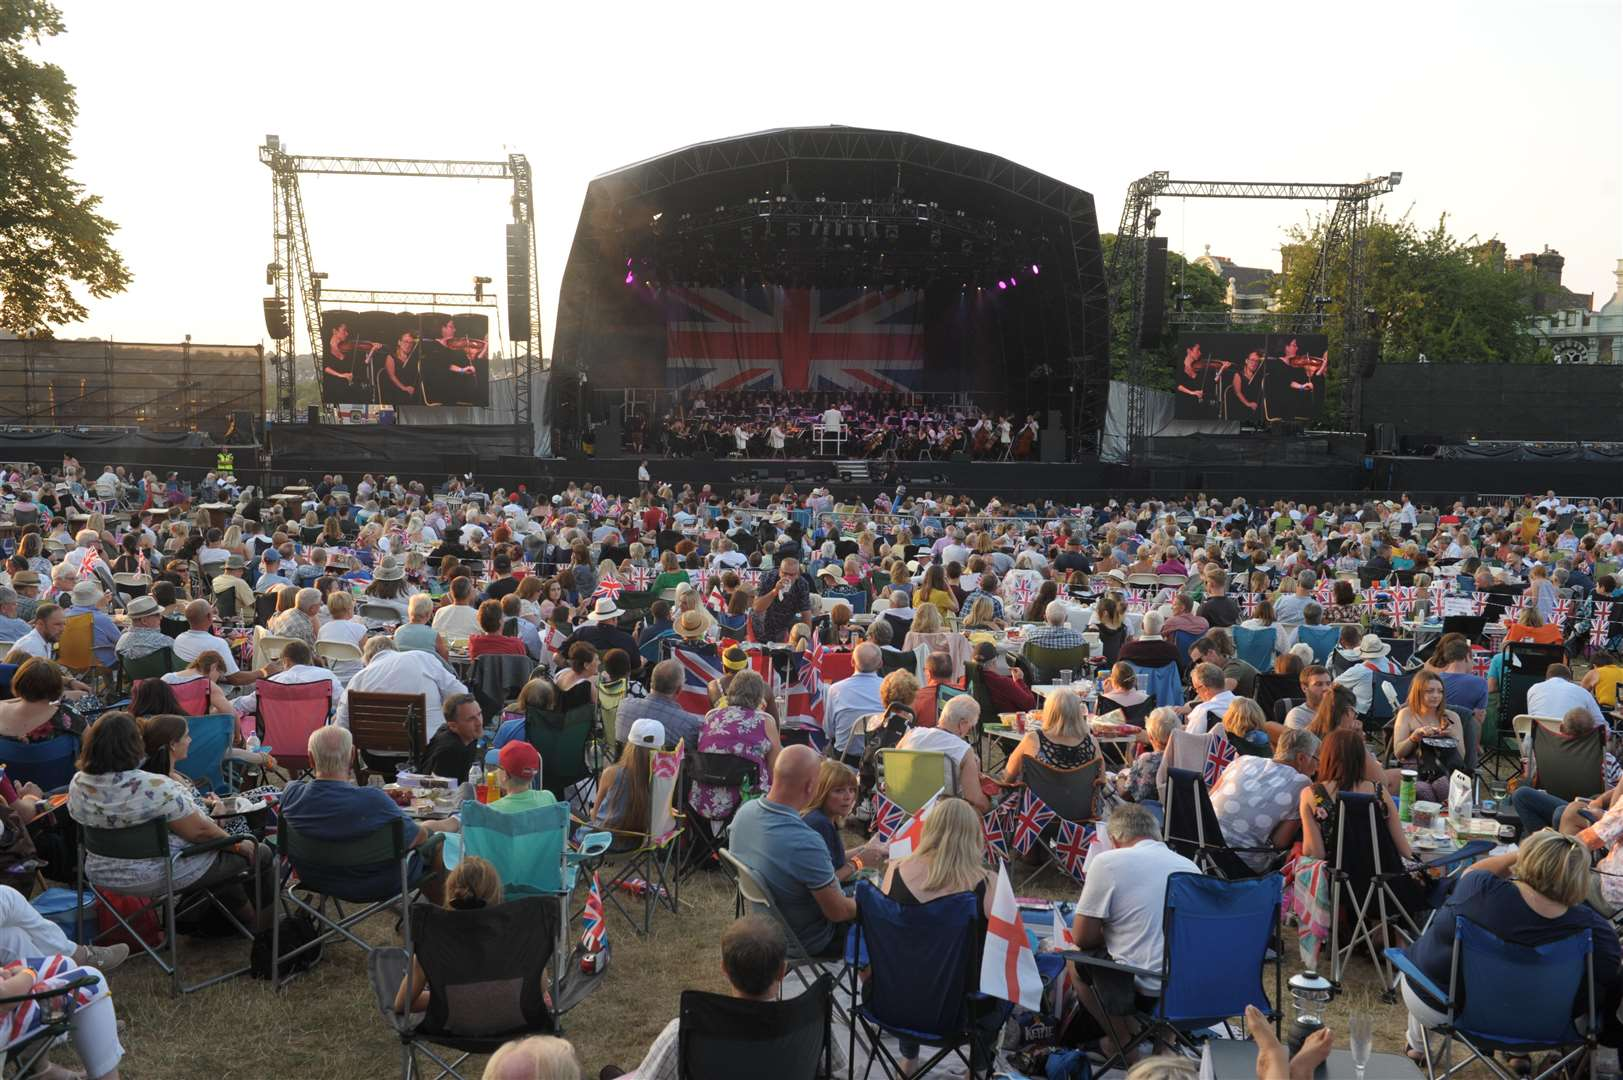 Rochester Castle Concerts lost more than £300k last year. Picture: Steve Crispe